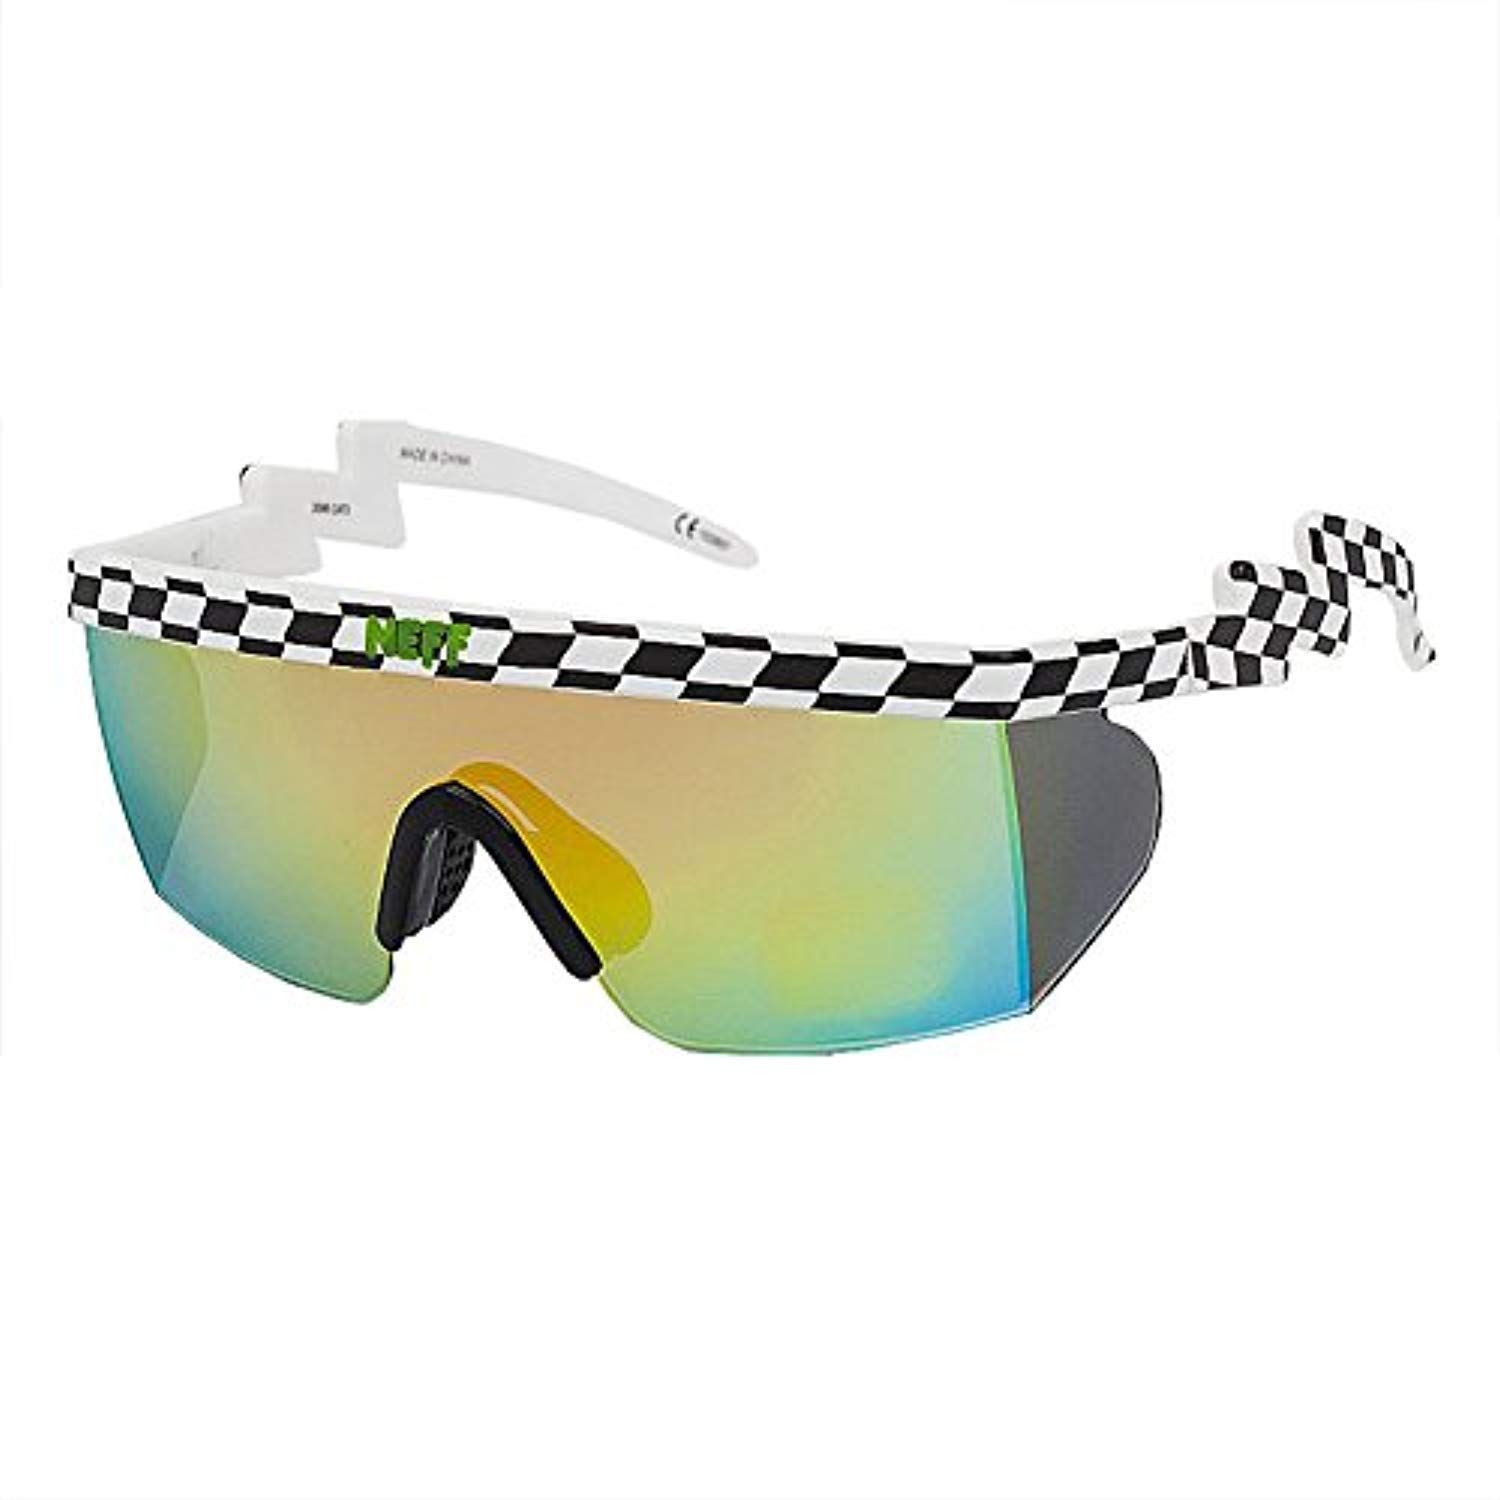 Neff Brodie Wrap Around Sport Sunglasses NF0304-Wild Tiger-p Holiday ... b0c8f4cf99